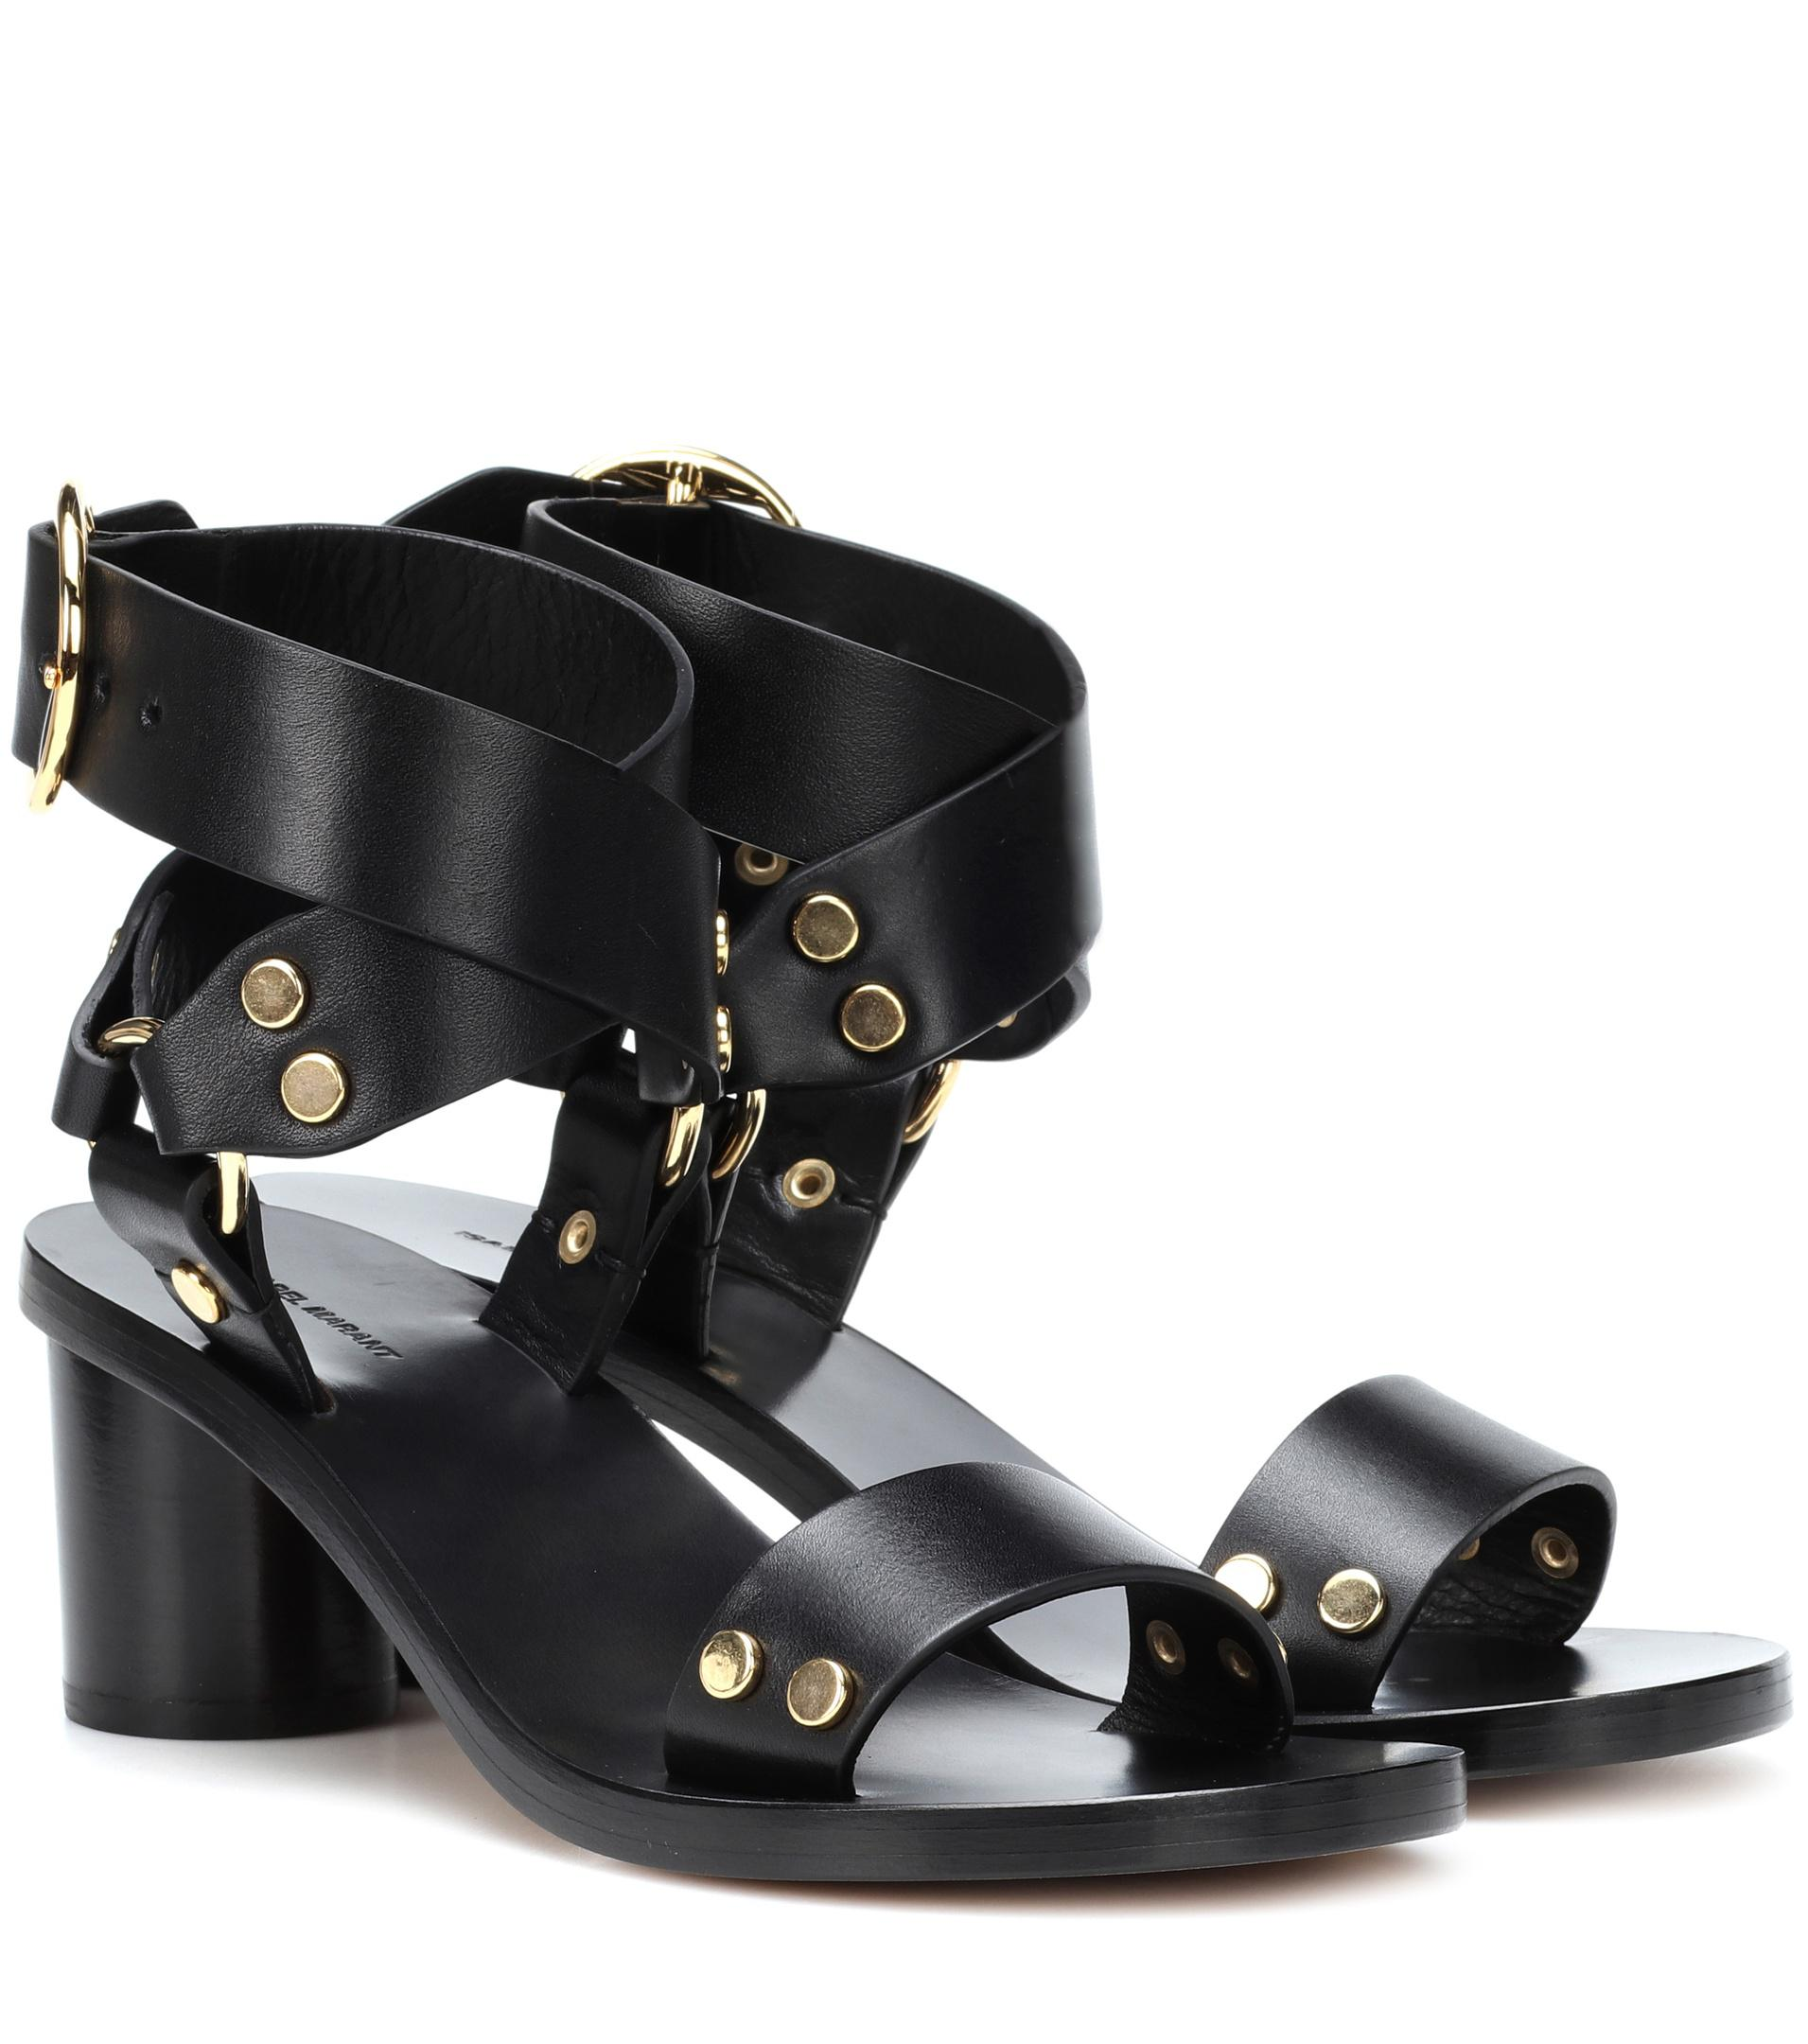 cheap sale authentic 2014 unisex for sale Isabel Marant Jeyka leather sandals cheap sale with mastercard RcBdt5e